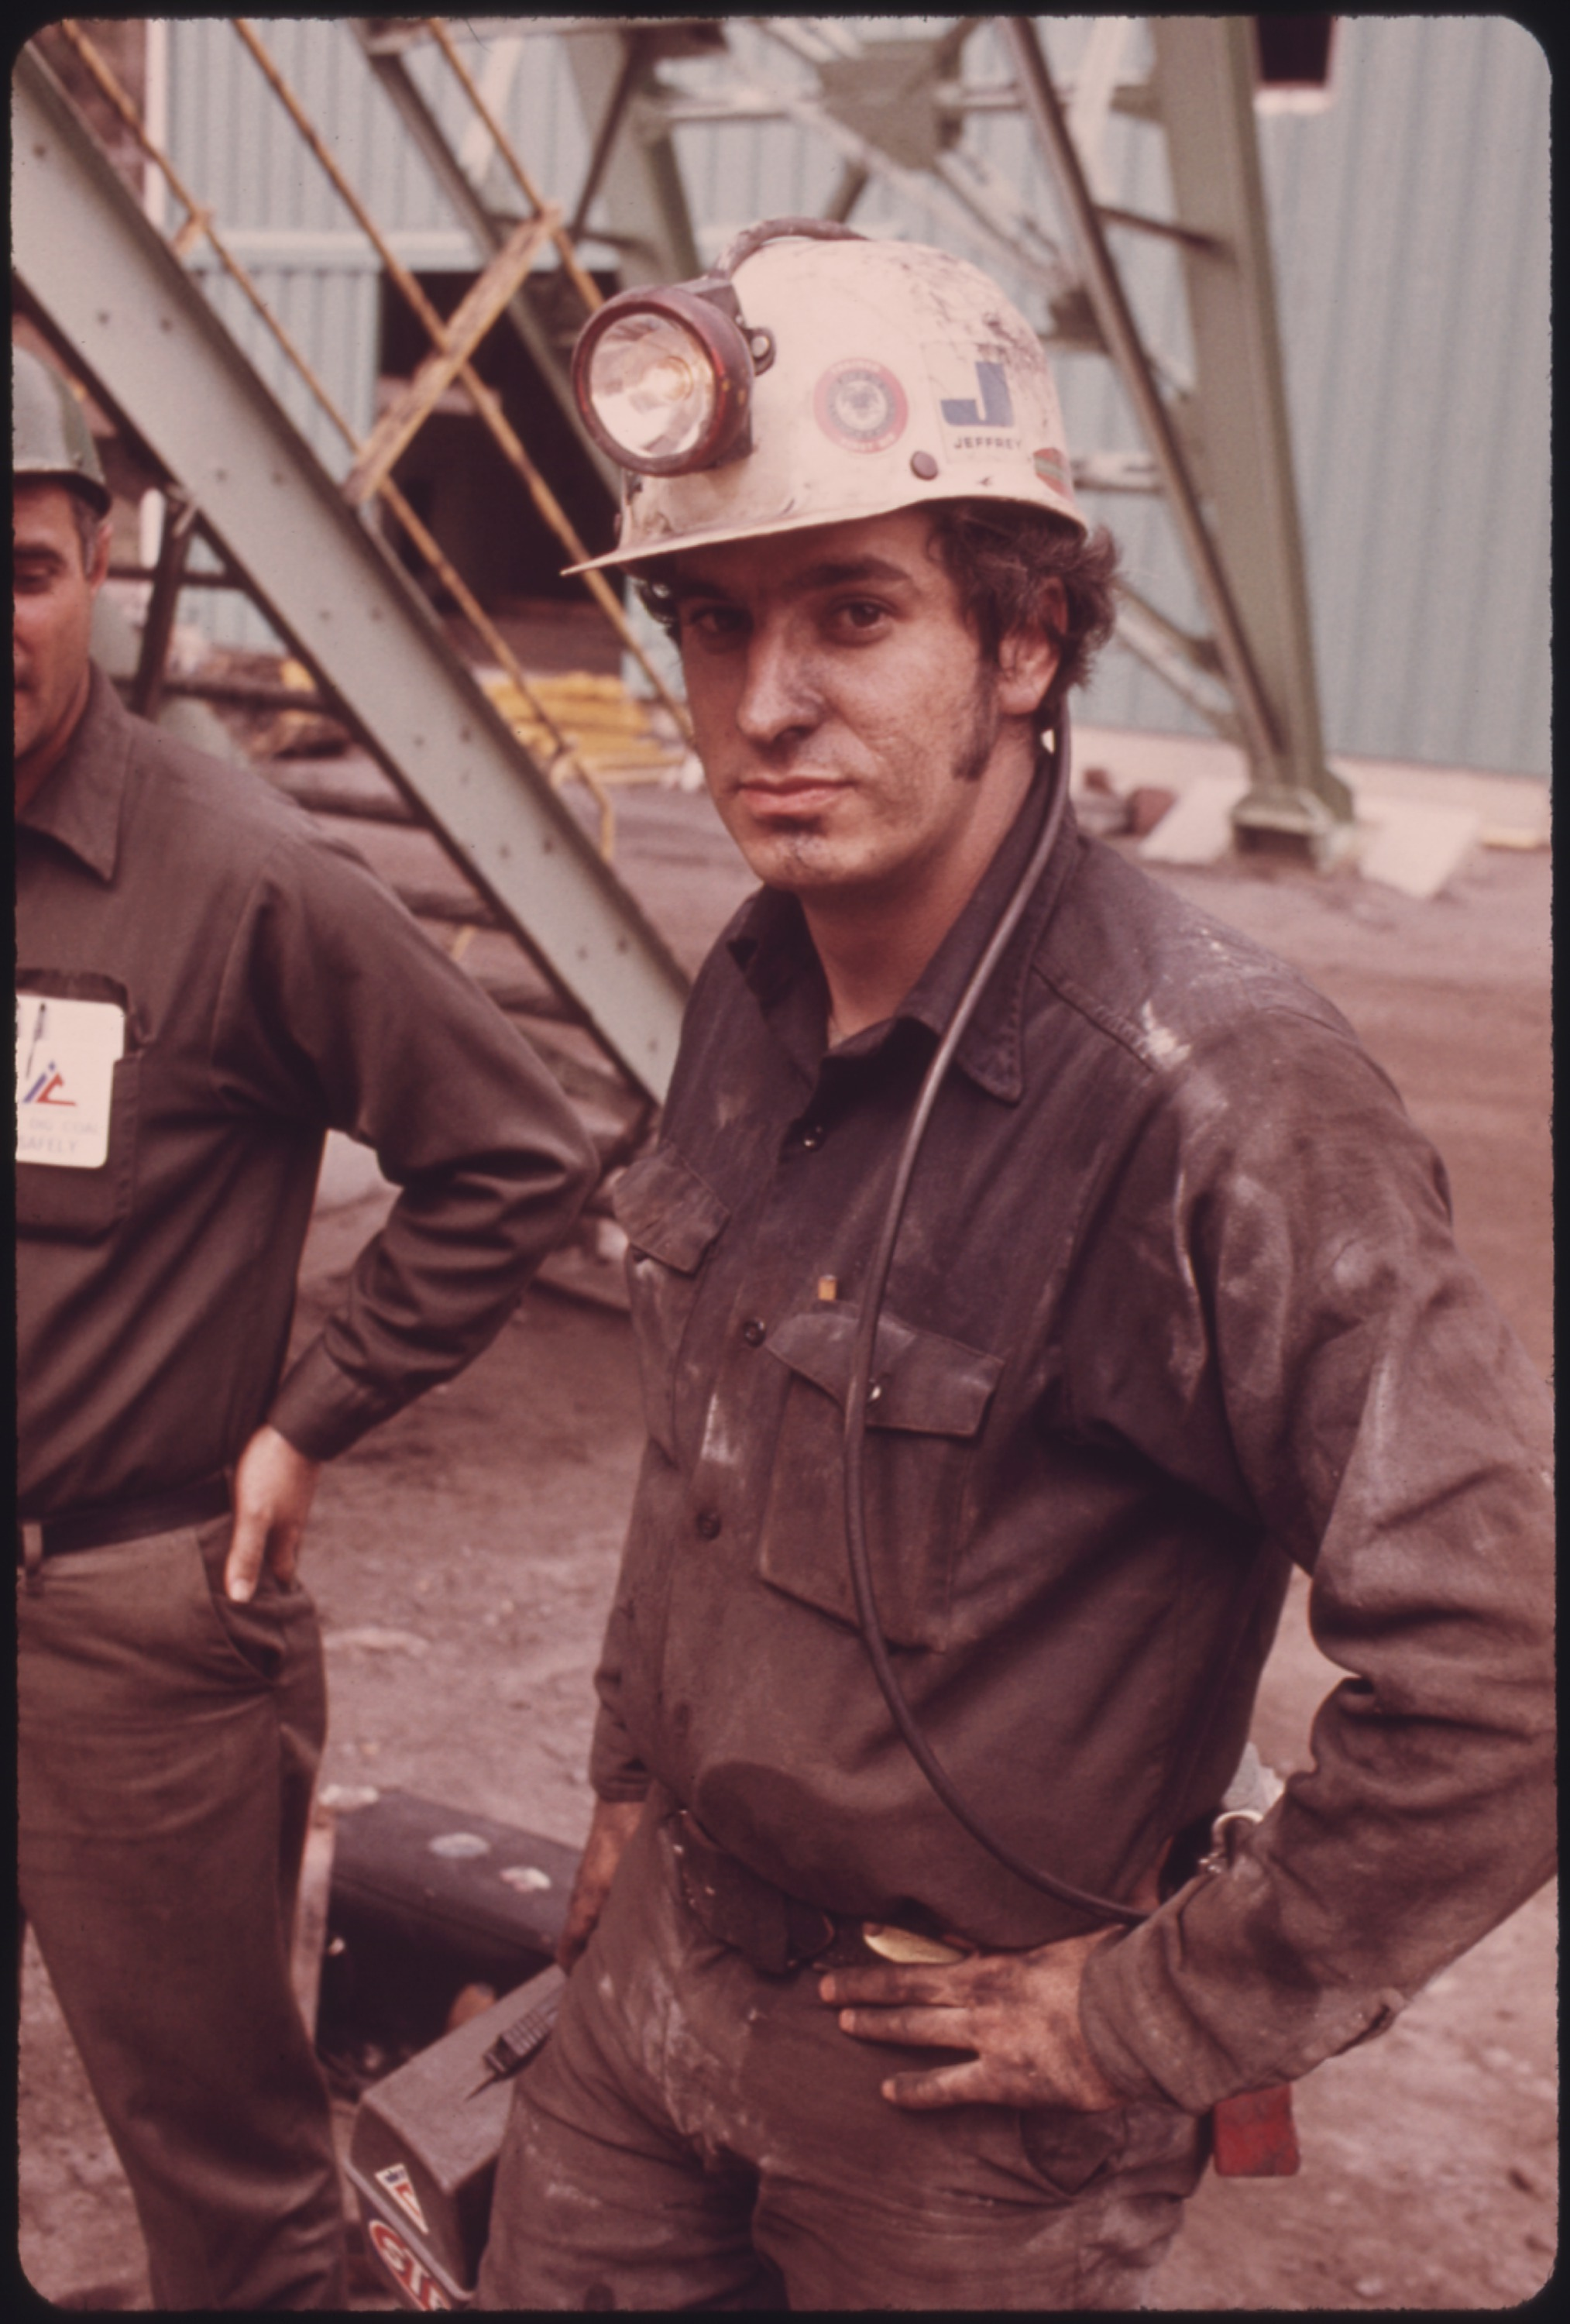 RALEIGH_WORLEY%2C_A_SECTION_FOREMAN_WITH_VIRGINIA-POCAHONTAS_COAL_COMPANY_MINE_%5E4_NEAR_RICHLANDS%2C_VIRGINIA._HE_IS_A..._-_NARA_-_556391